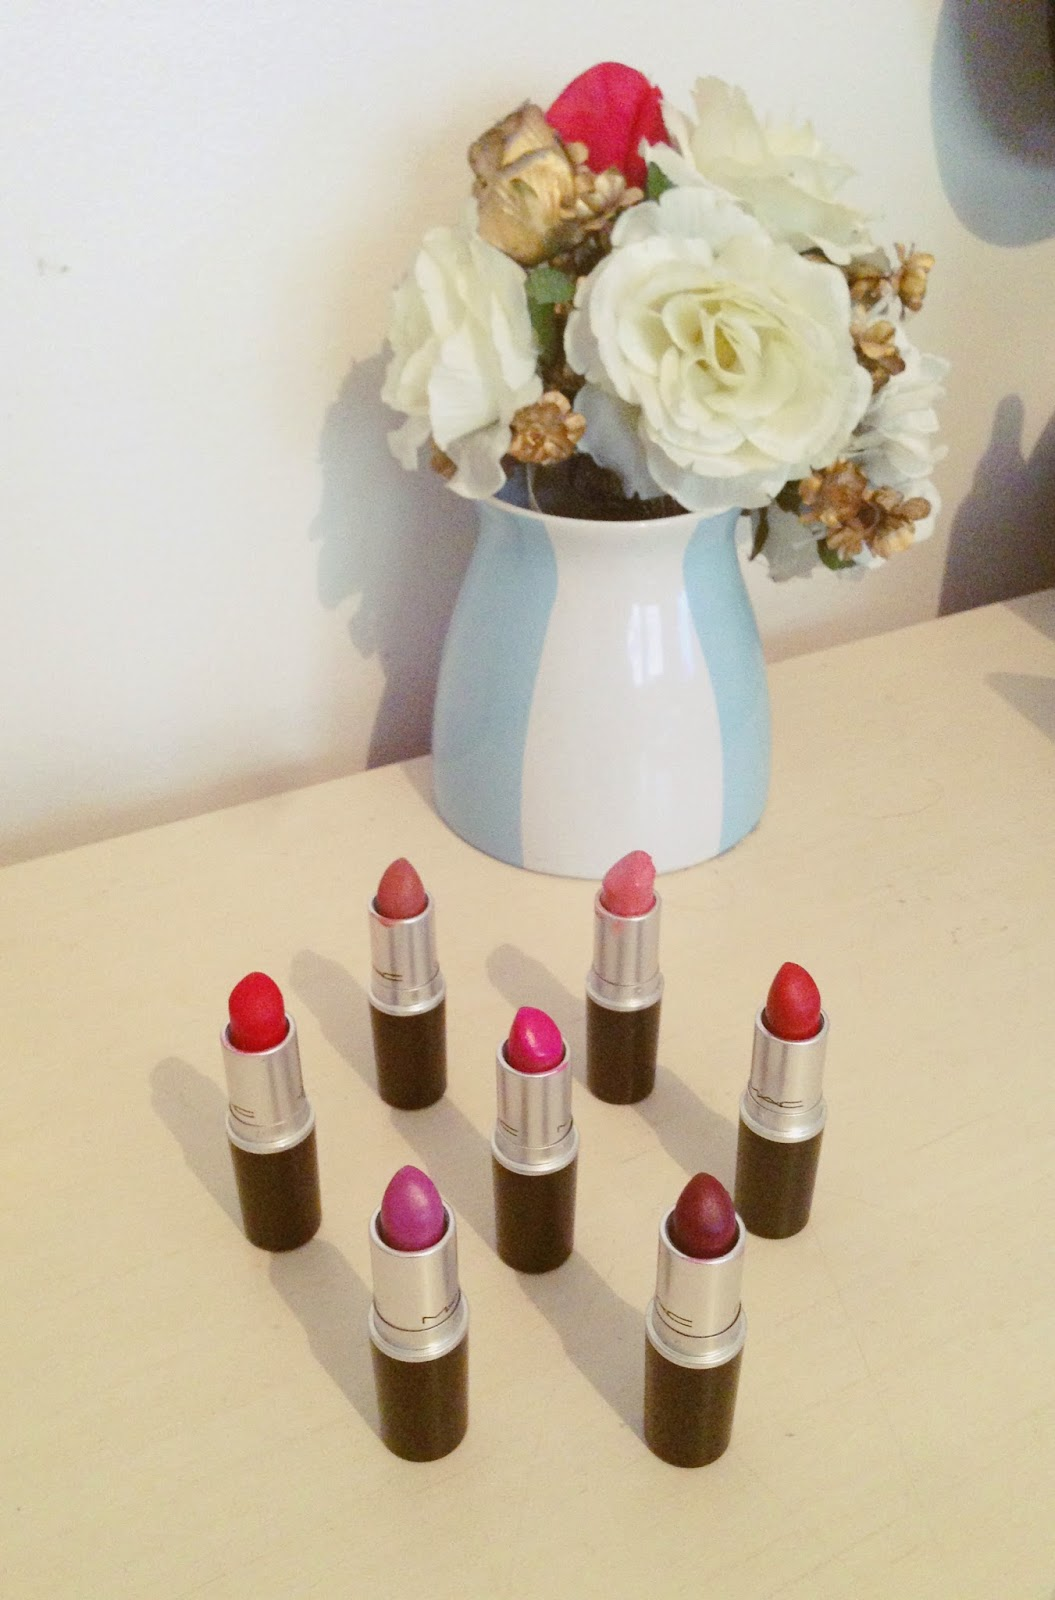 My Mini MAC Lipstick Collection